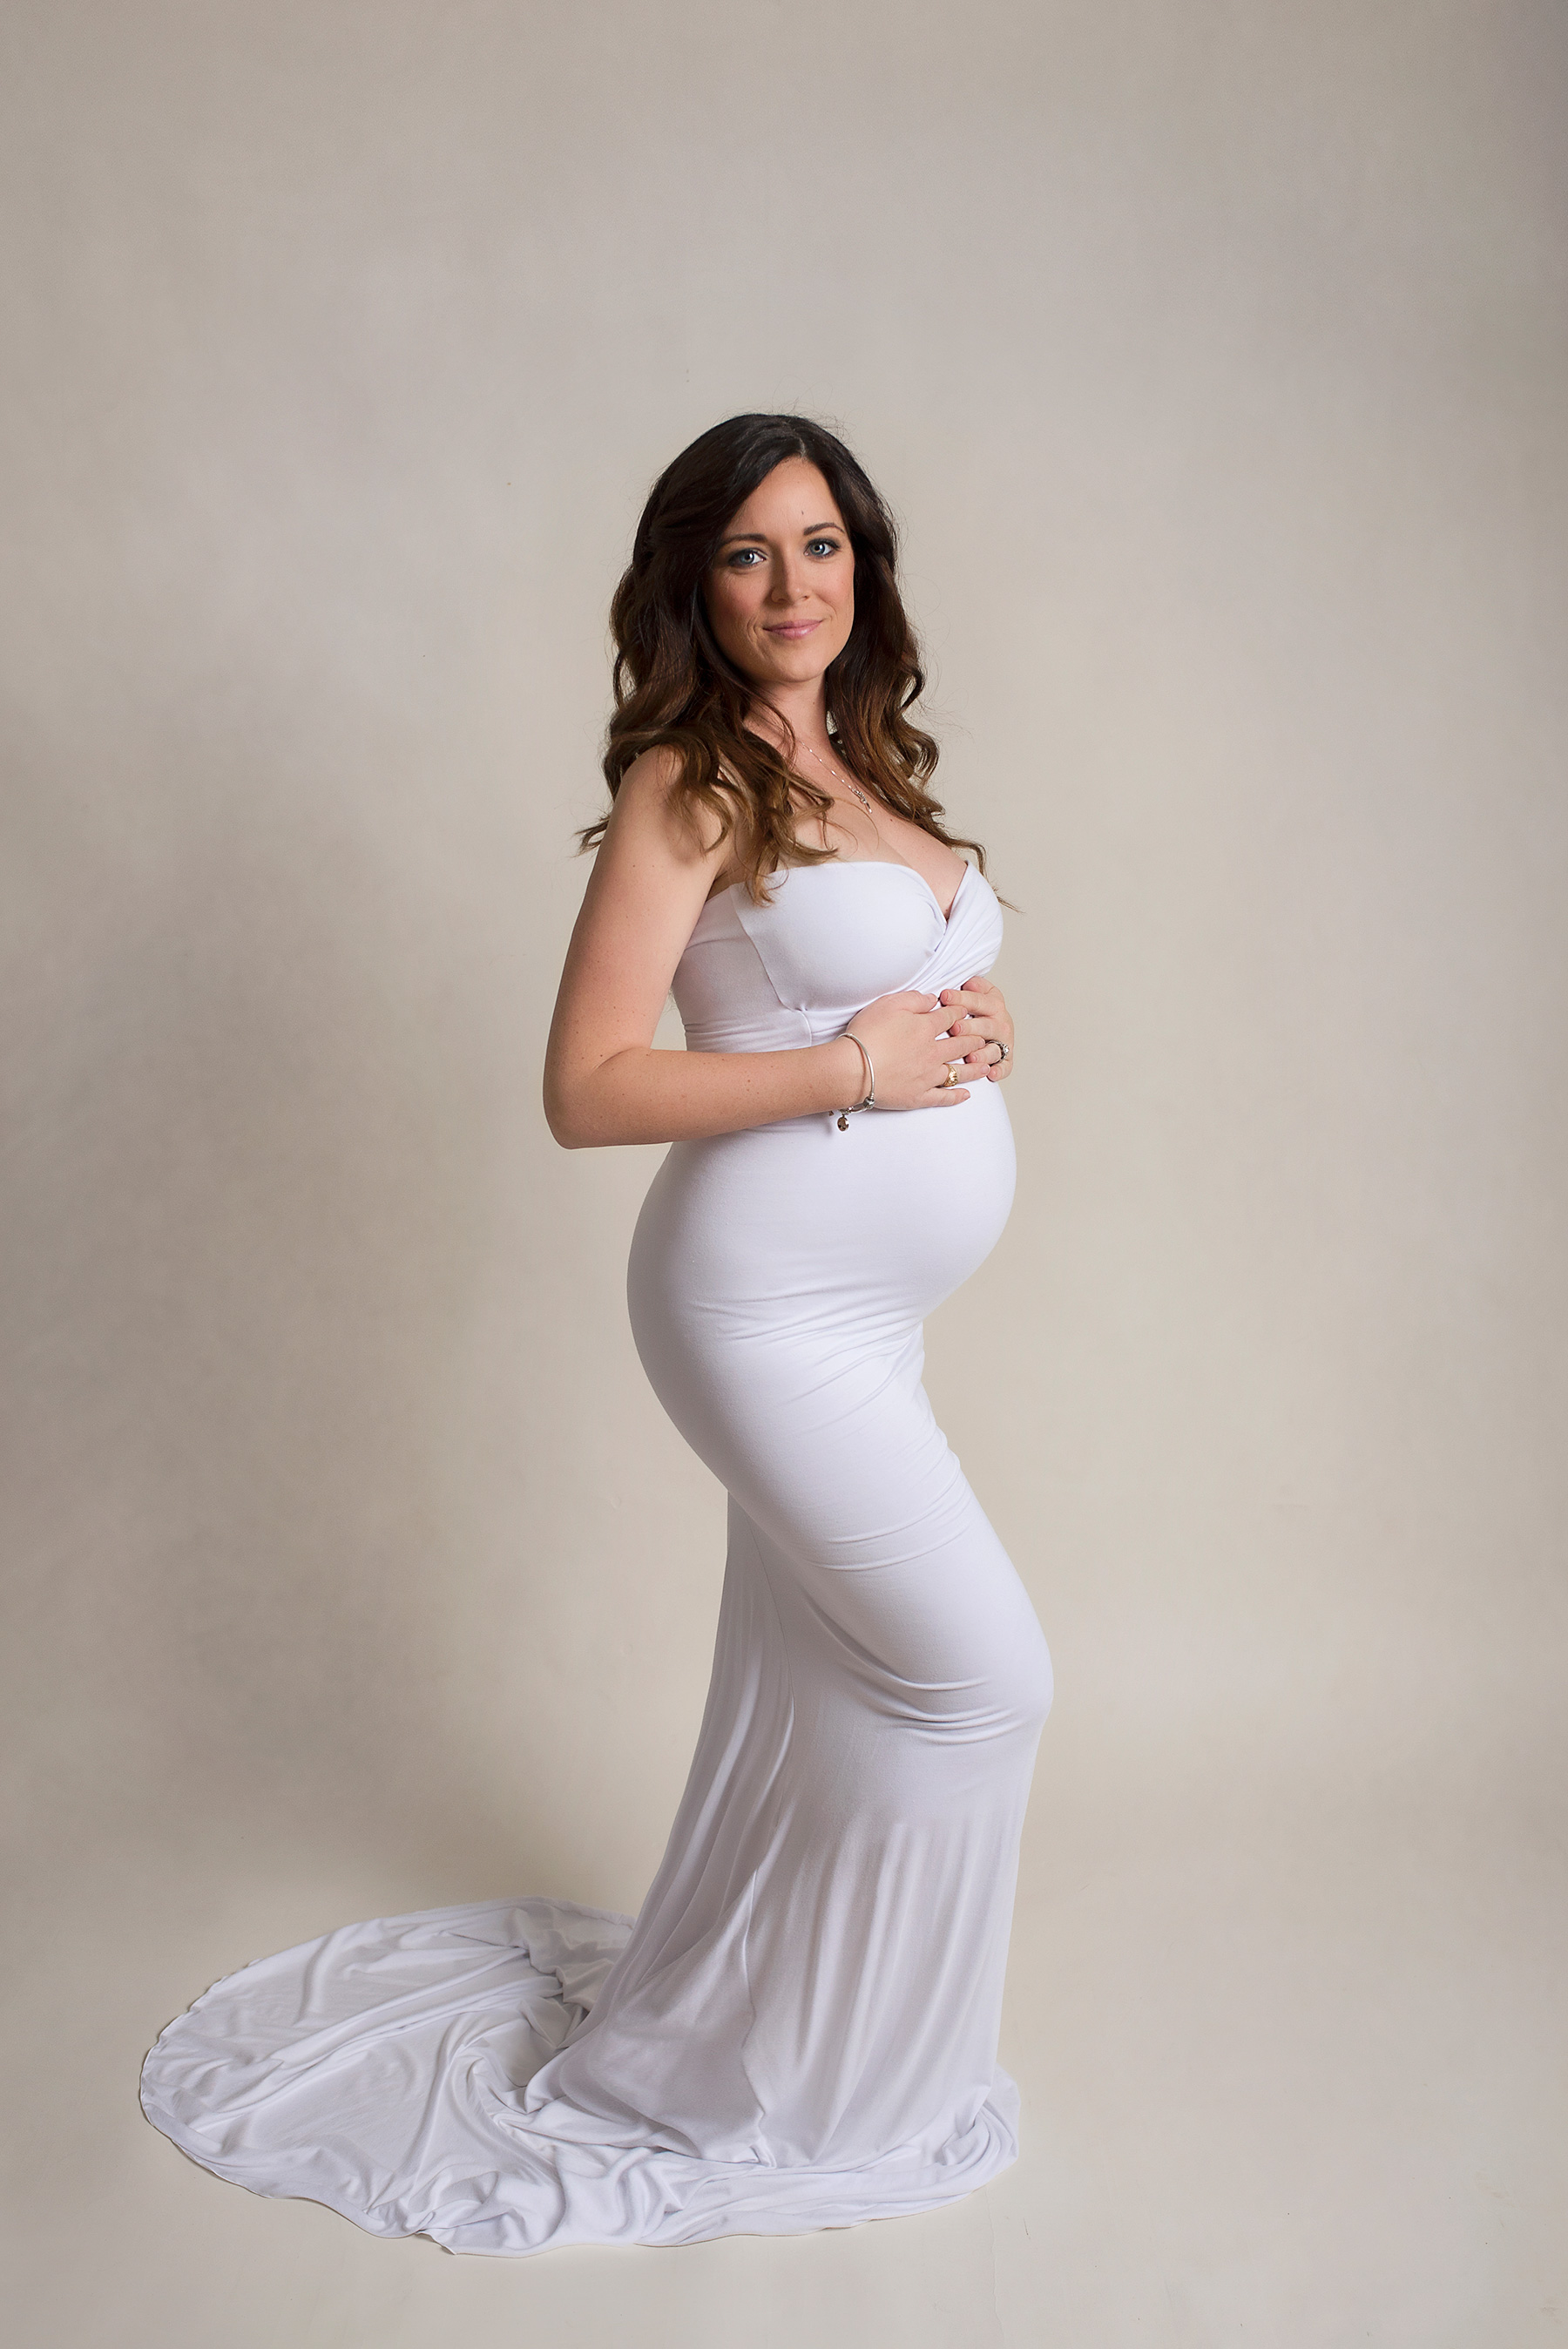 Maternity Gown Gallery - CLJ Photography - Frisco Photographer